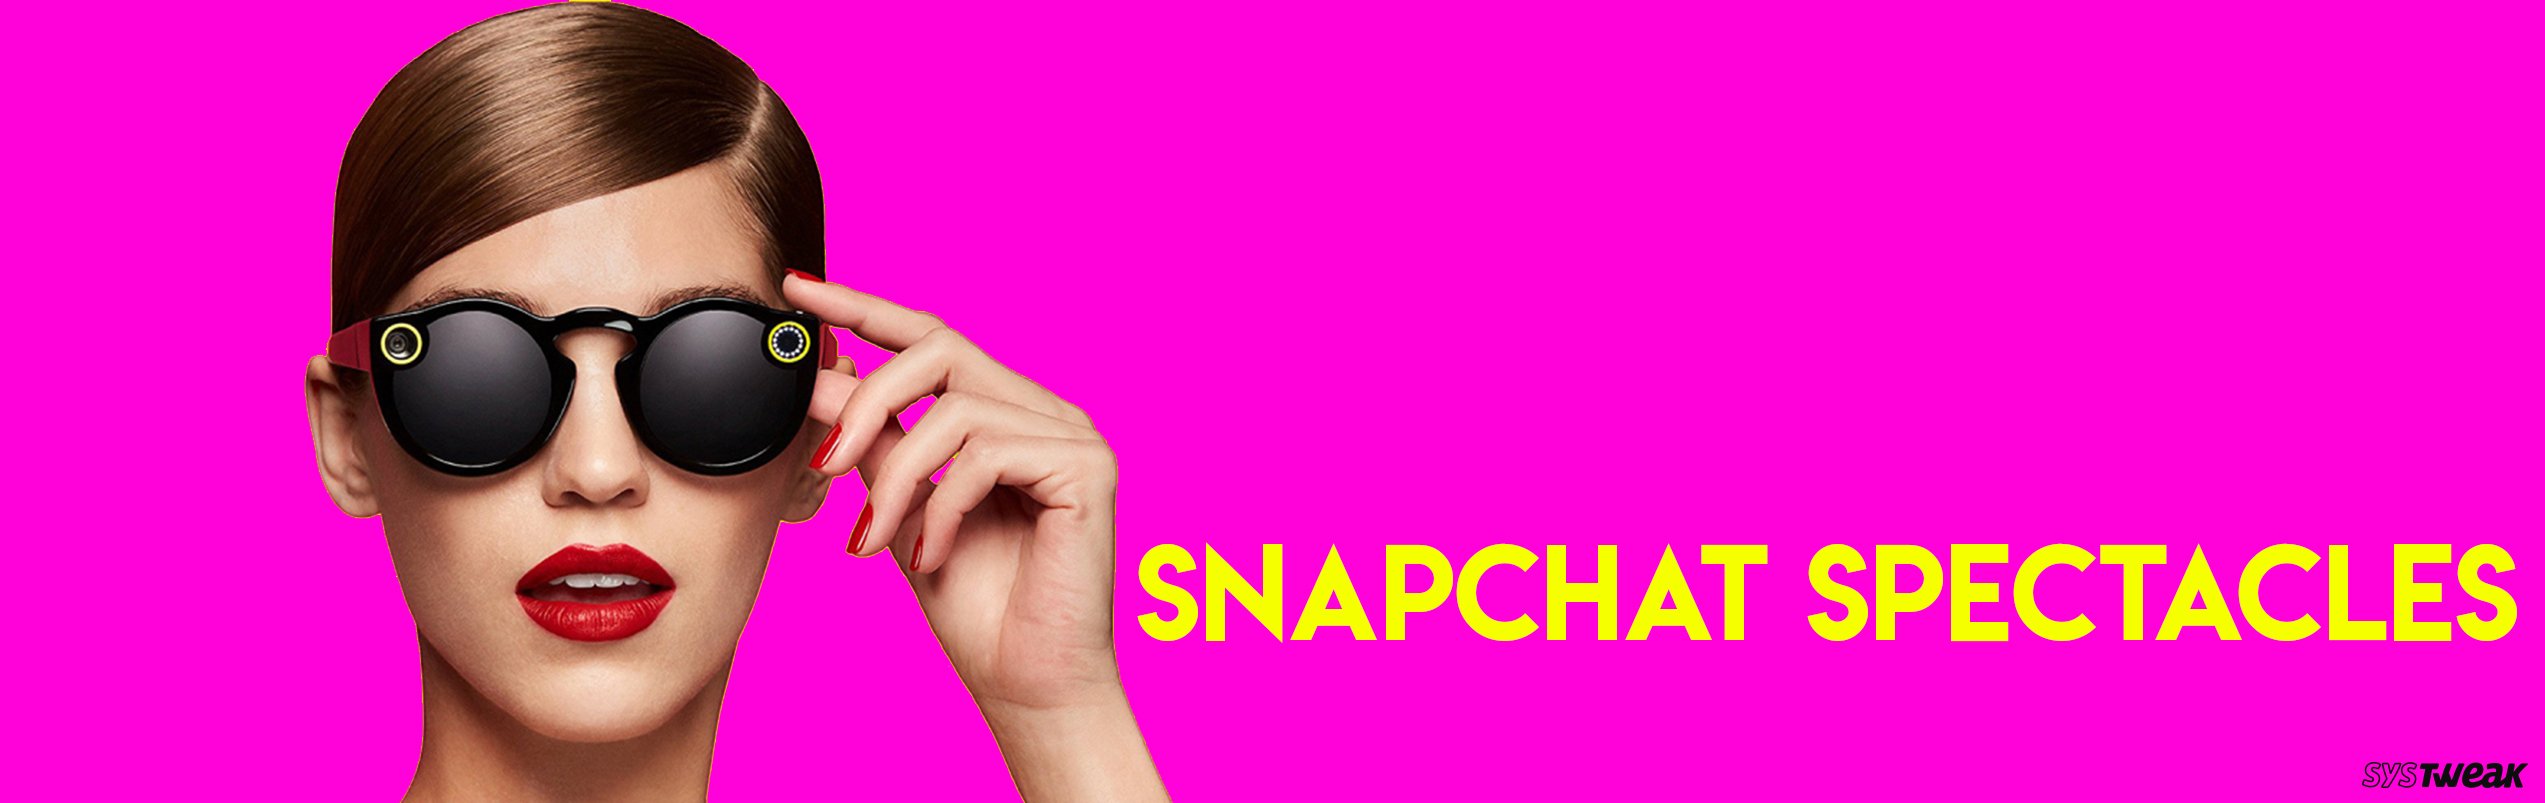 Everything You Need To Know About Snapchat's New Spectacles